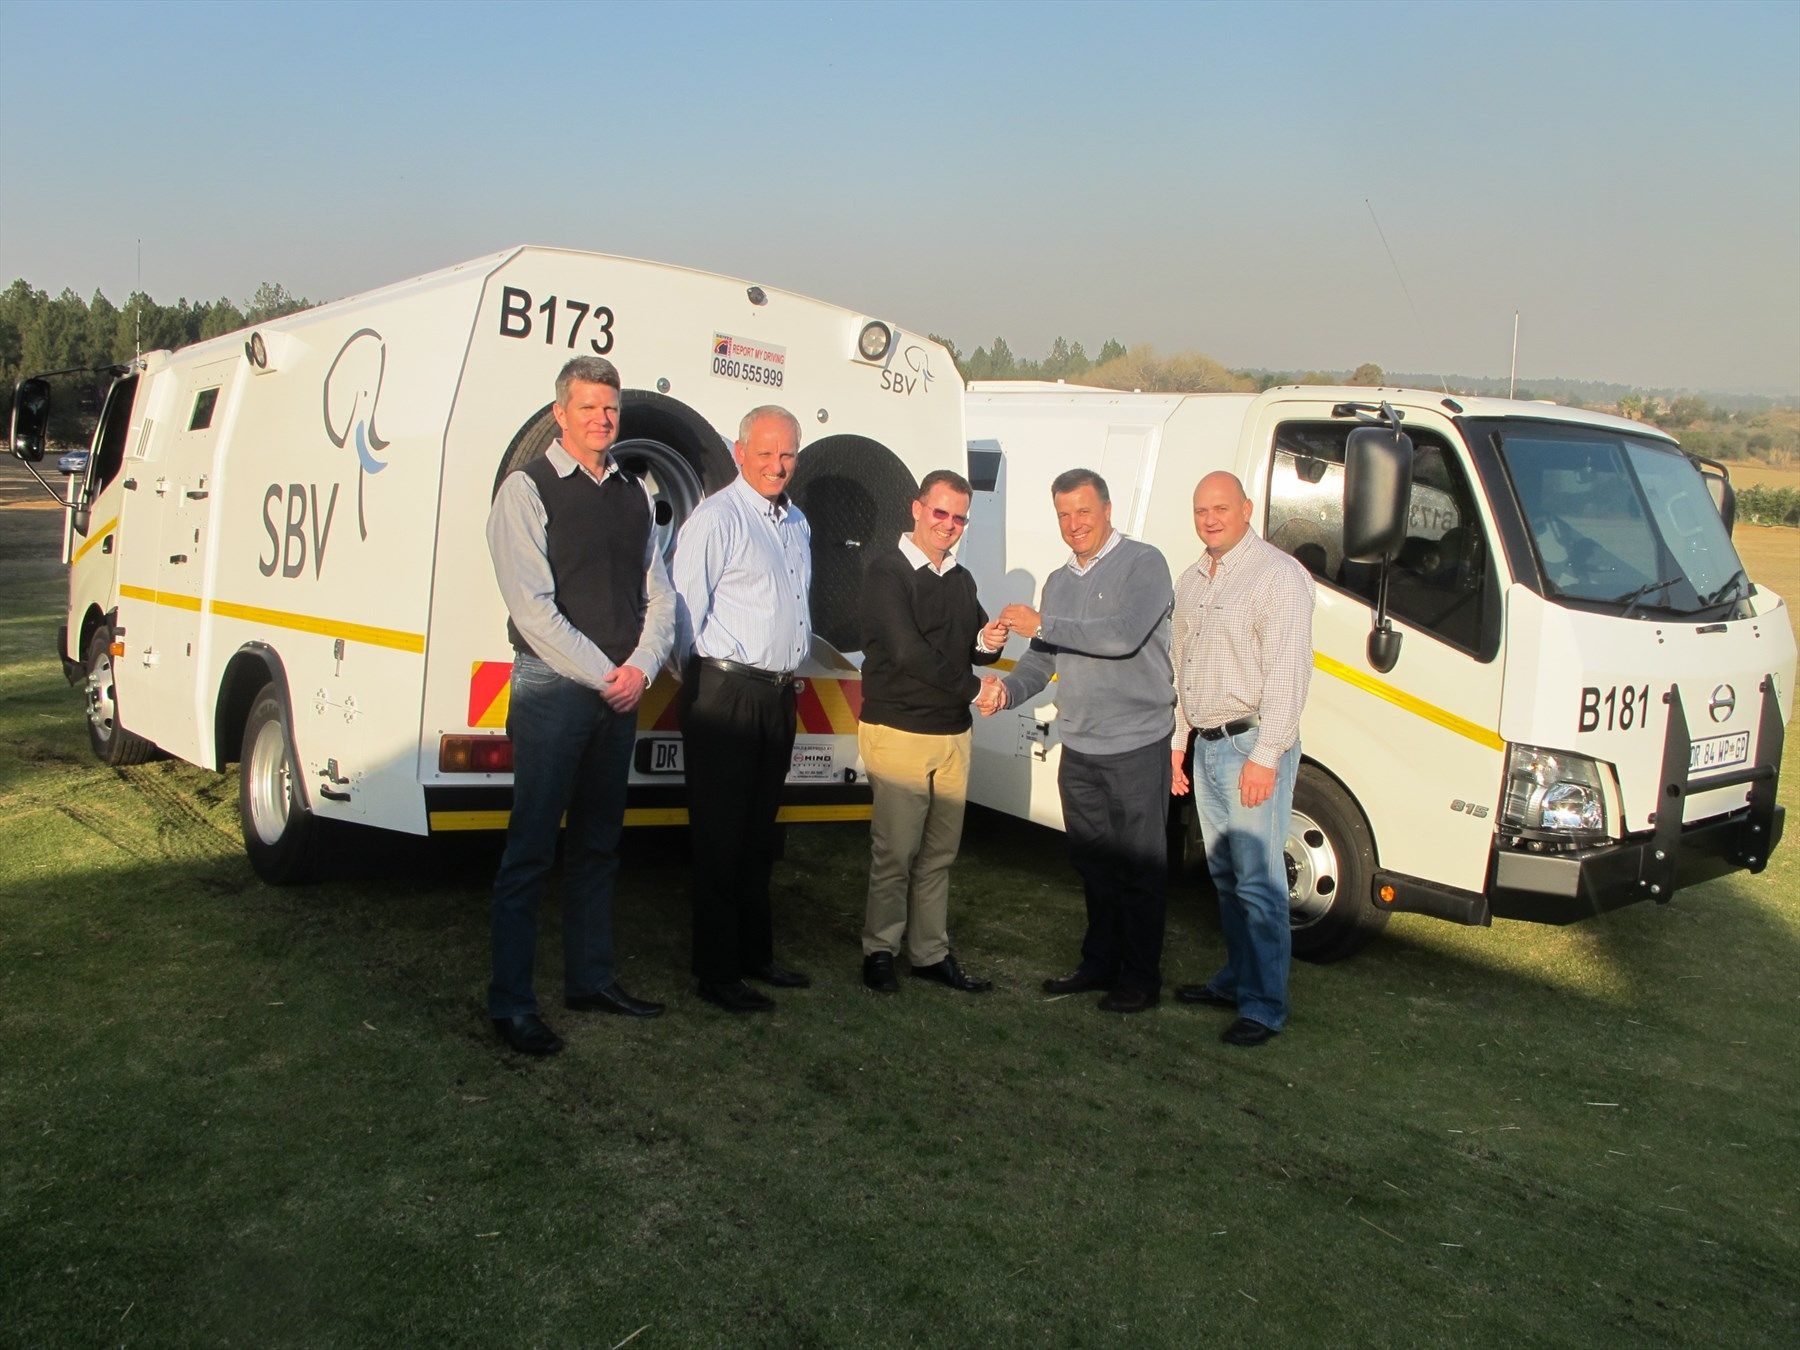 sbv-continues-to-raise-the-bar-with-its-cash-in-transit-fleet